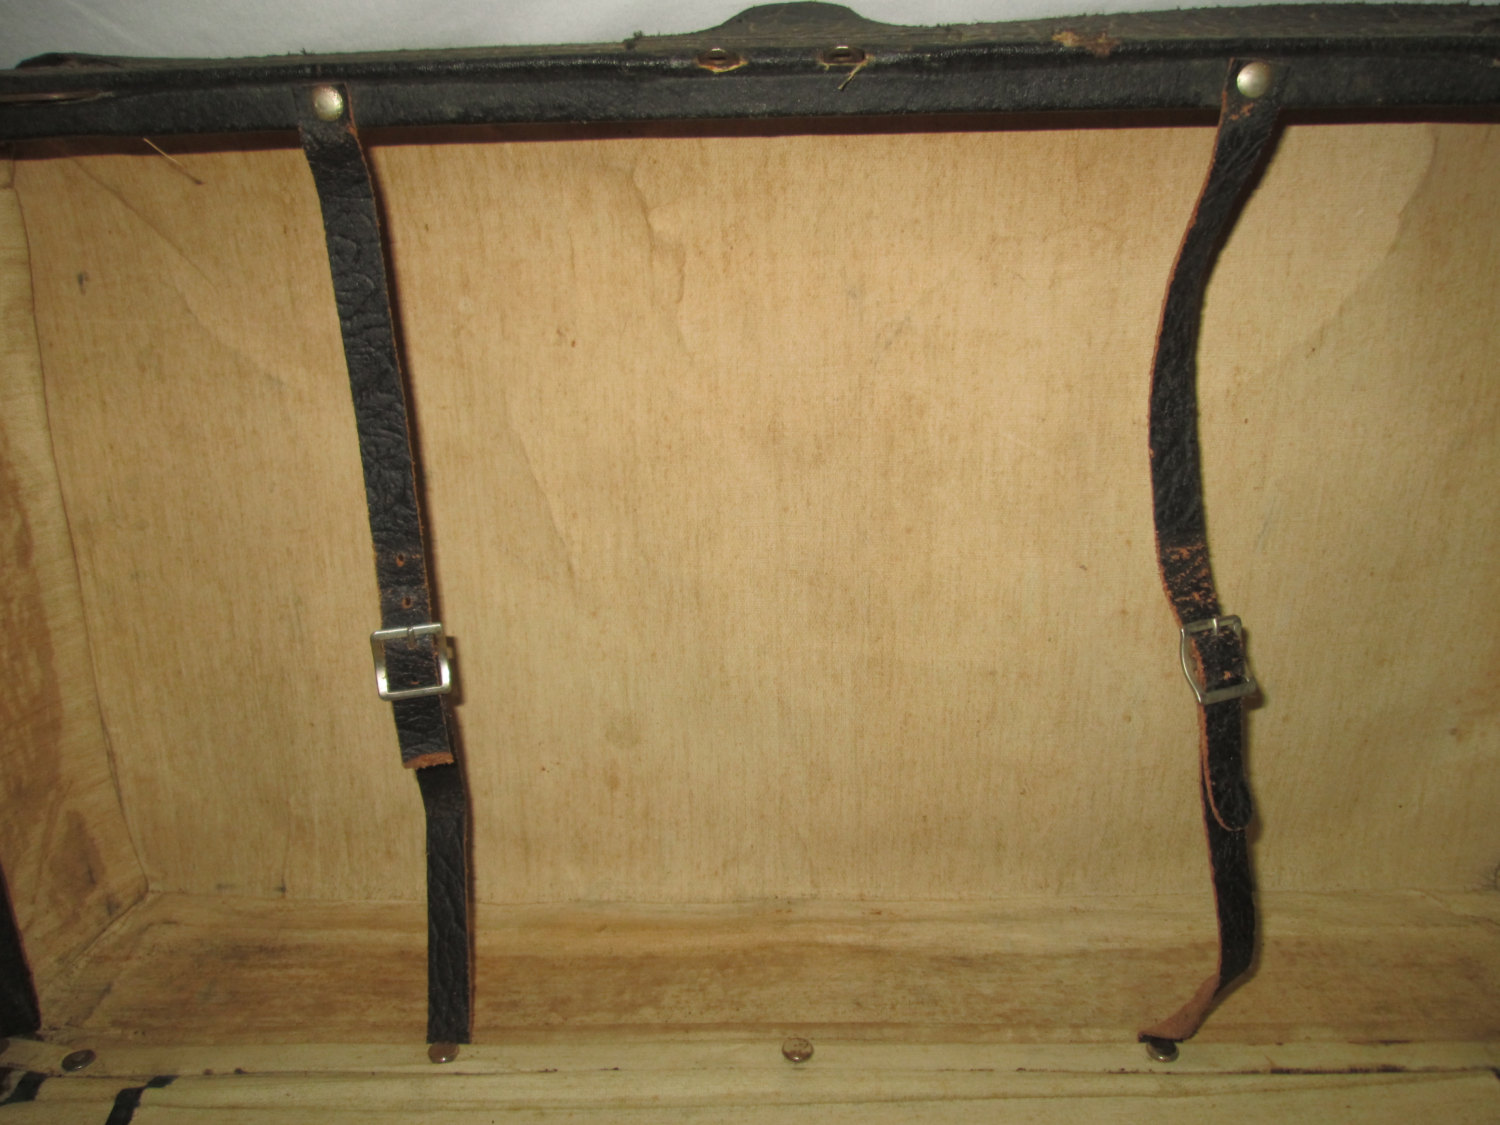 Antique 1800 S All Leather Suitcase Display Home Decor Black Exterior Very Clean Inside Beige Fabric